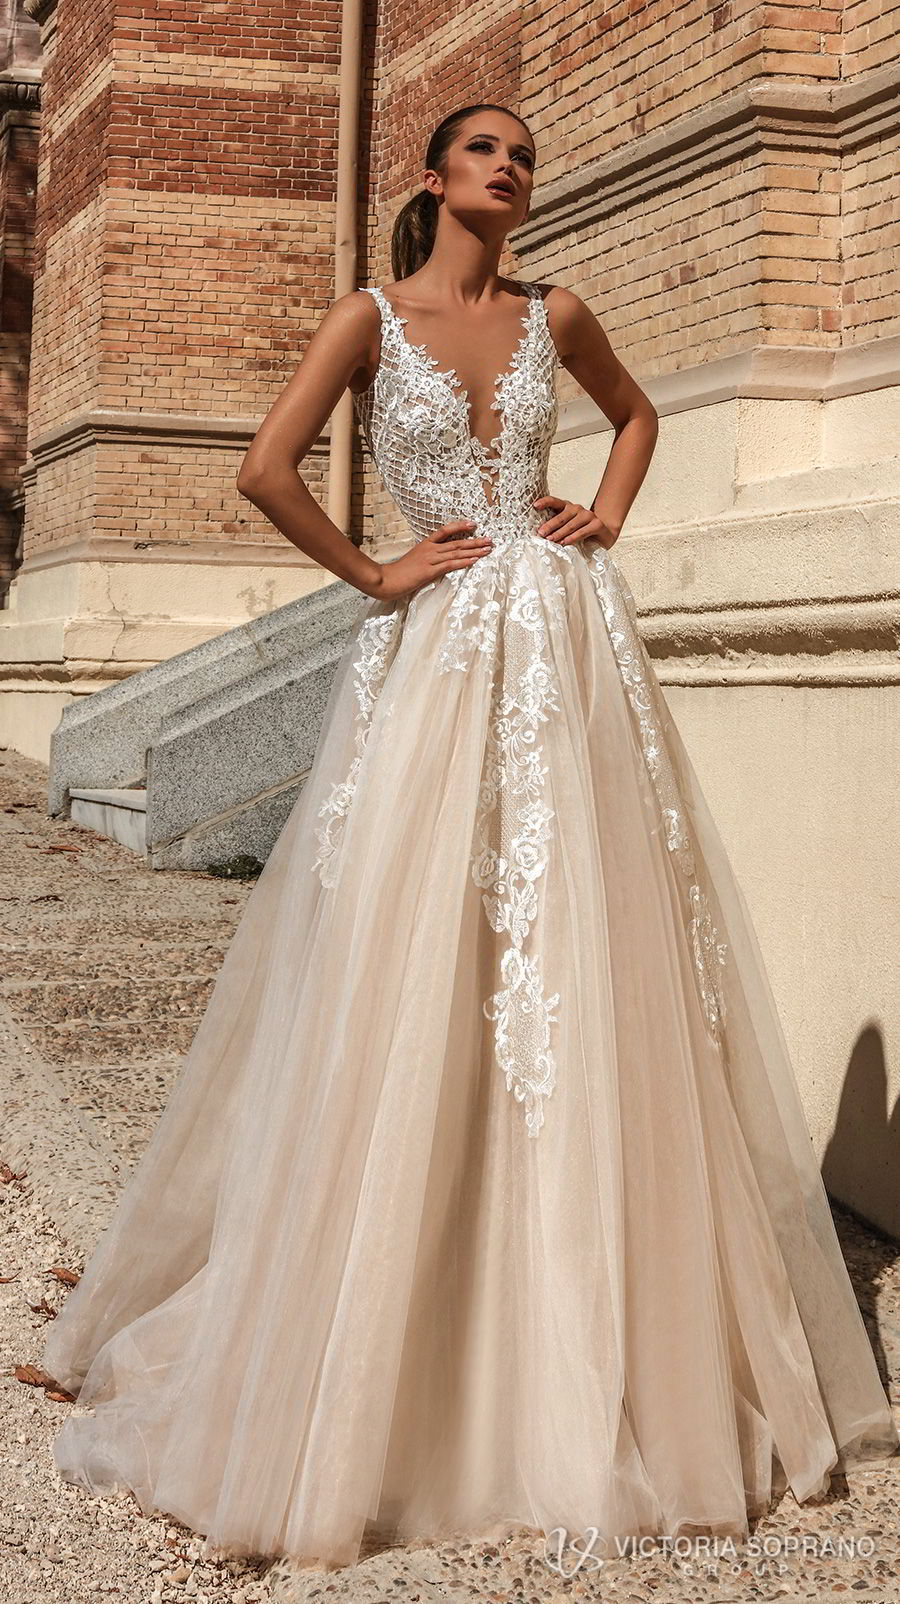 Victoria Soprano 2018 Wedding Dresses The One Bridal